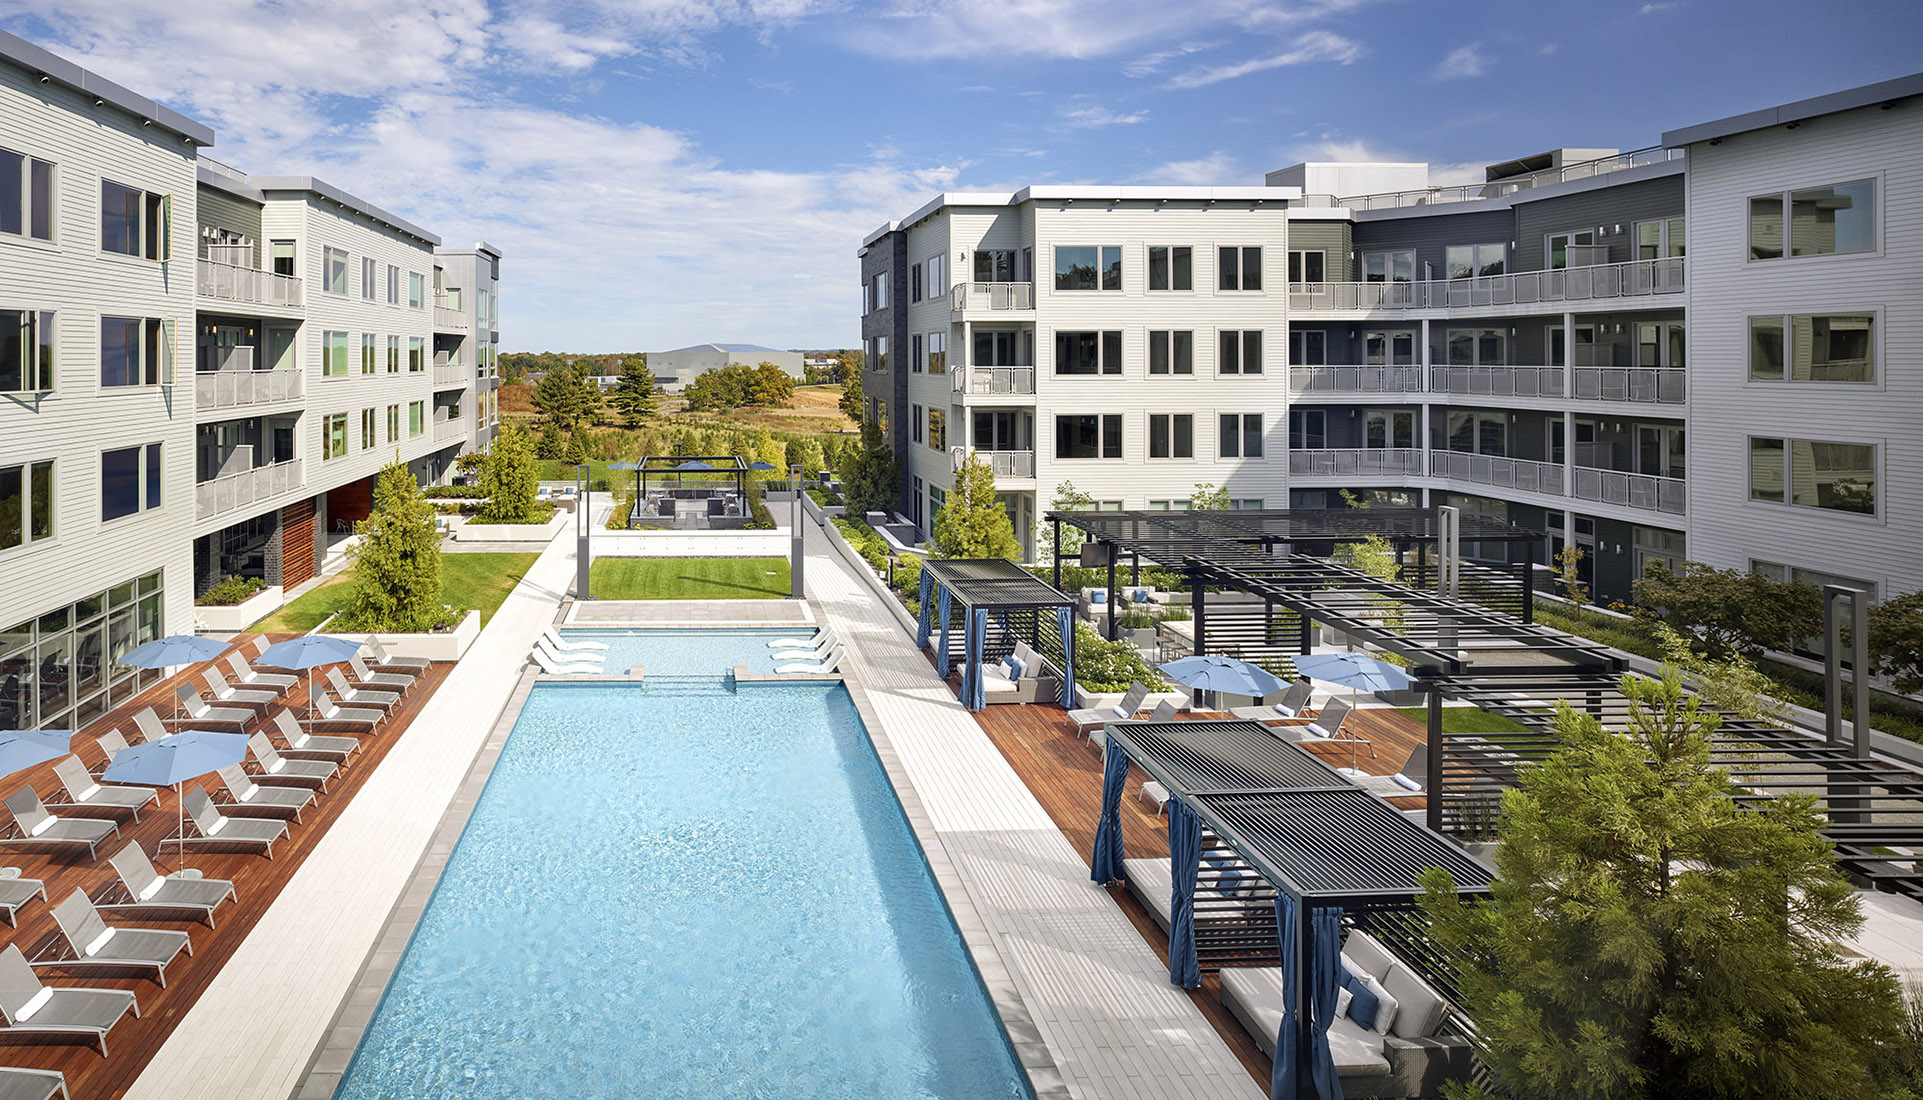 AVE Florham Park aerial view looking over pool courtyard